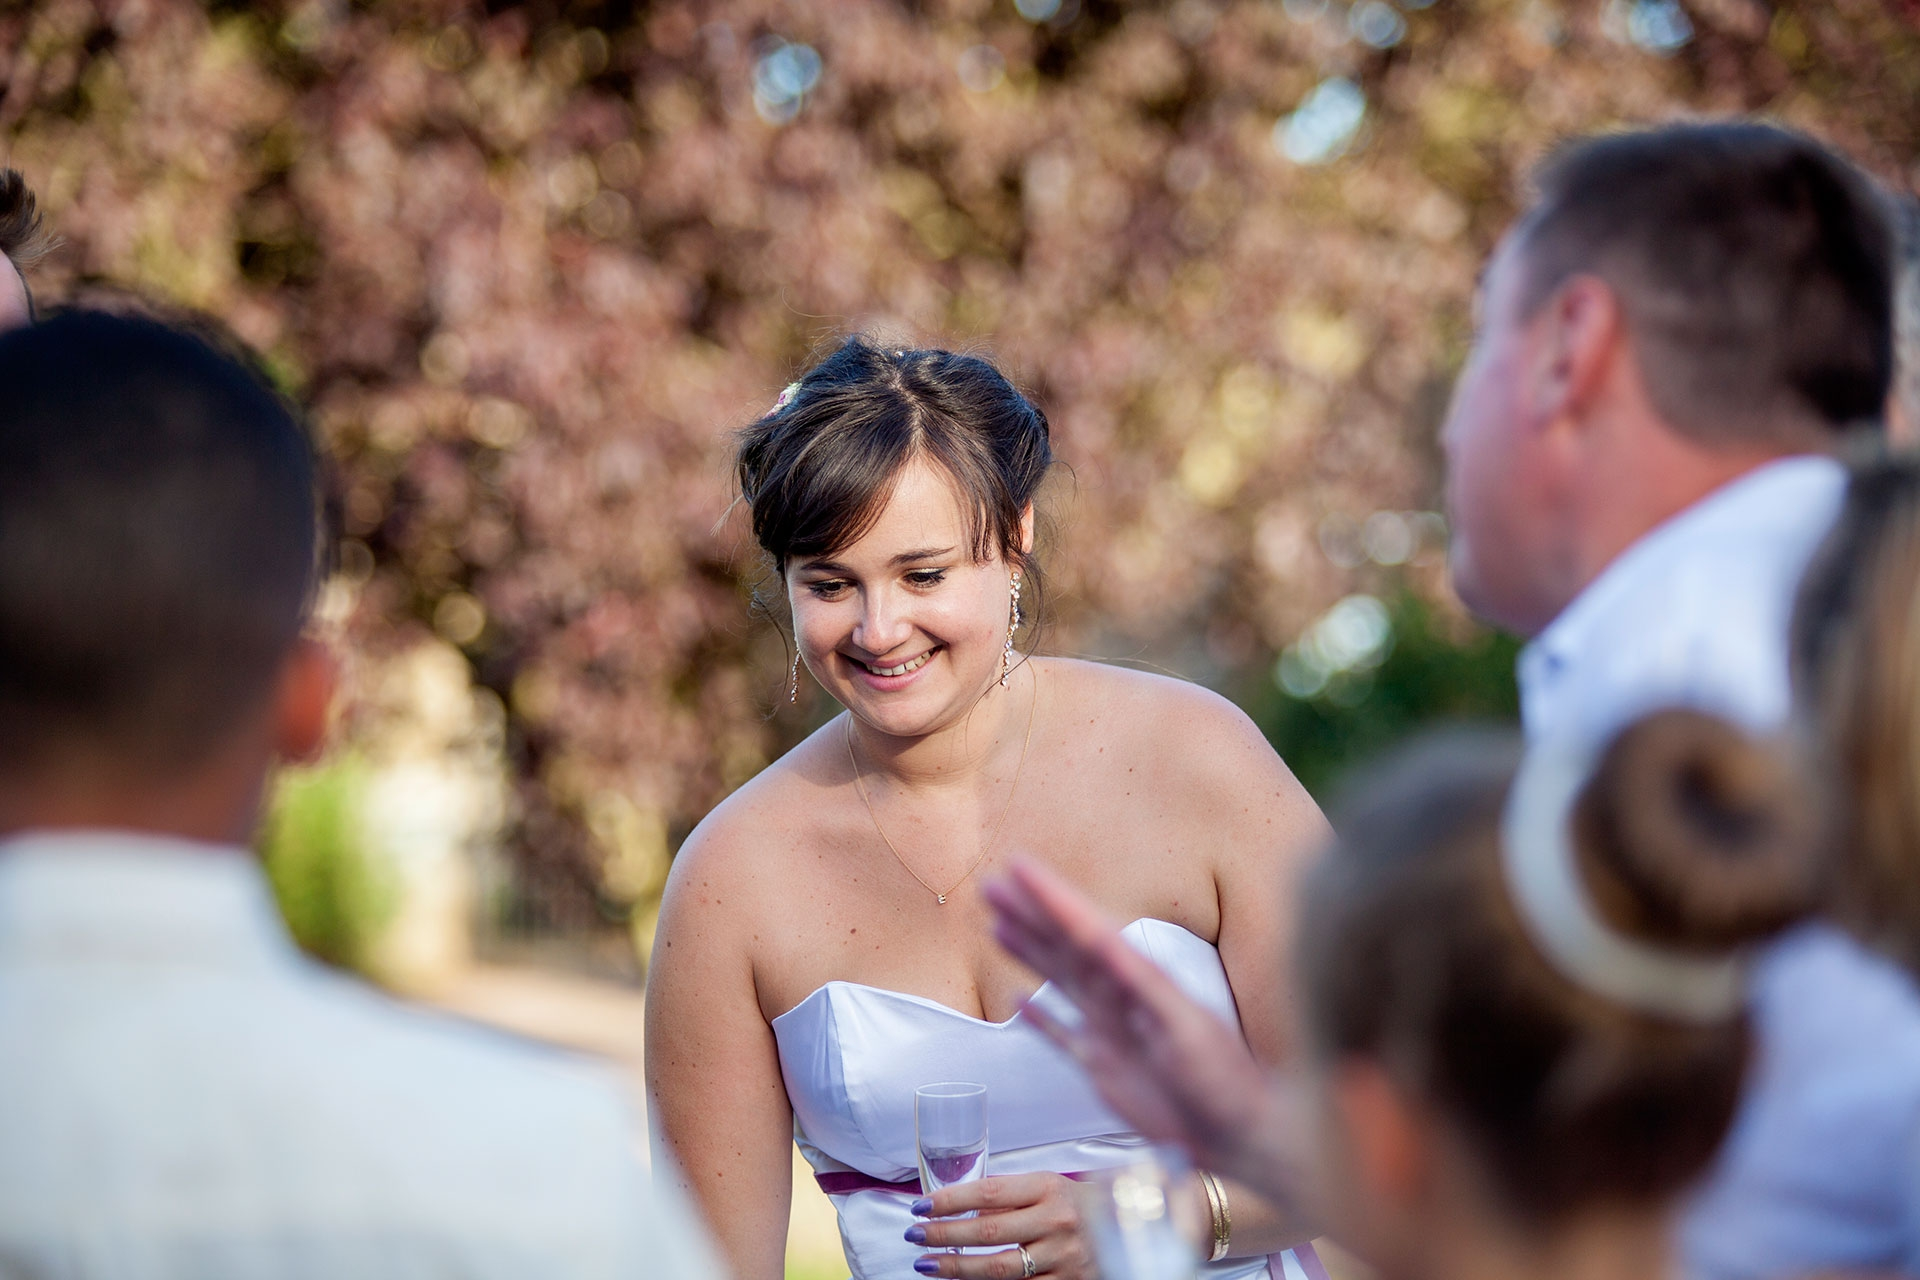 particuliers-evenements-mariages-oui-france&philippe-64